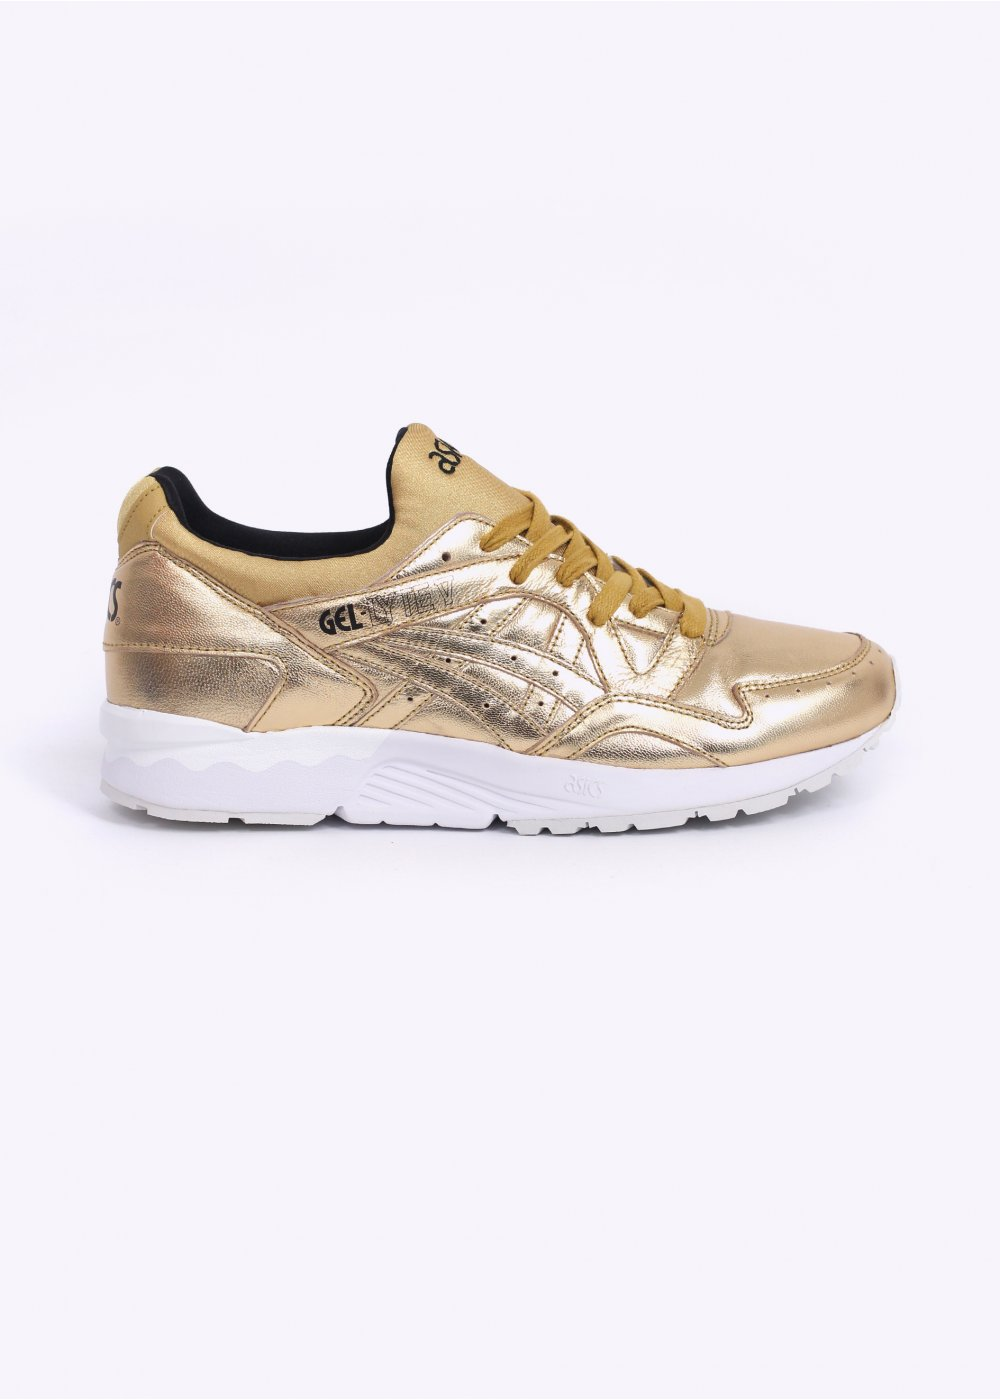 check out debfb 6eb39 Gel-Lyte V Trainers Holiday Pack - Gold